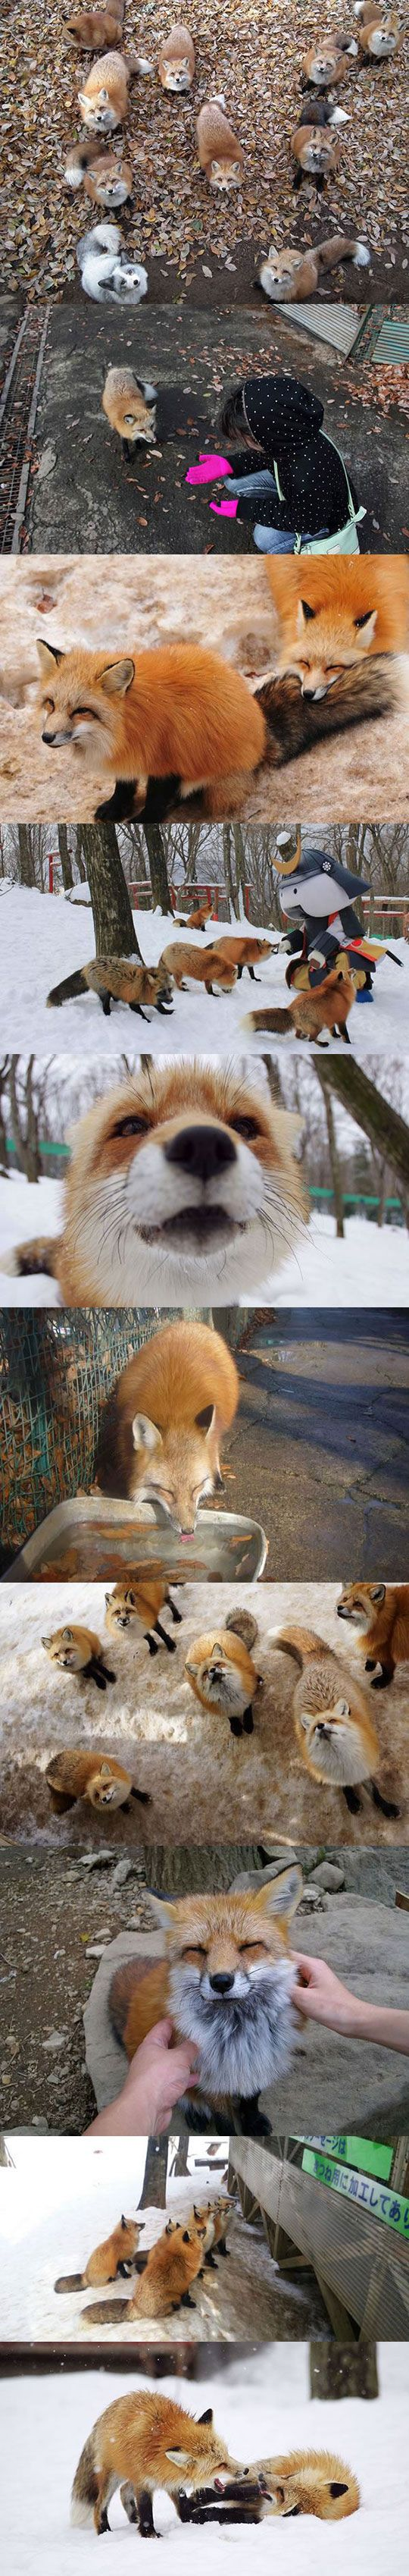 Wonderful Fox Village In Japan... Is this real life!?!?!?   IT IS!!!! http://zao-fox-village.com